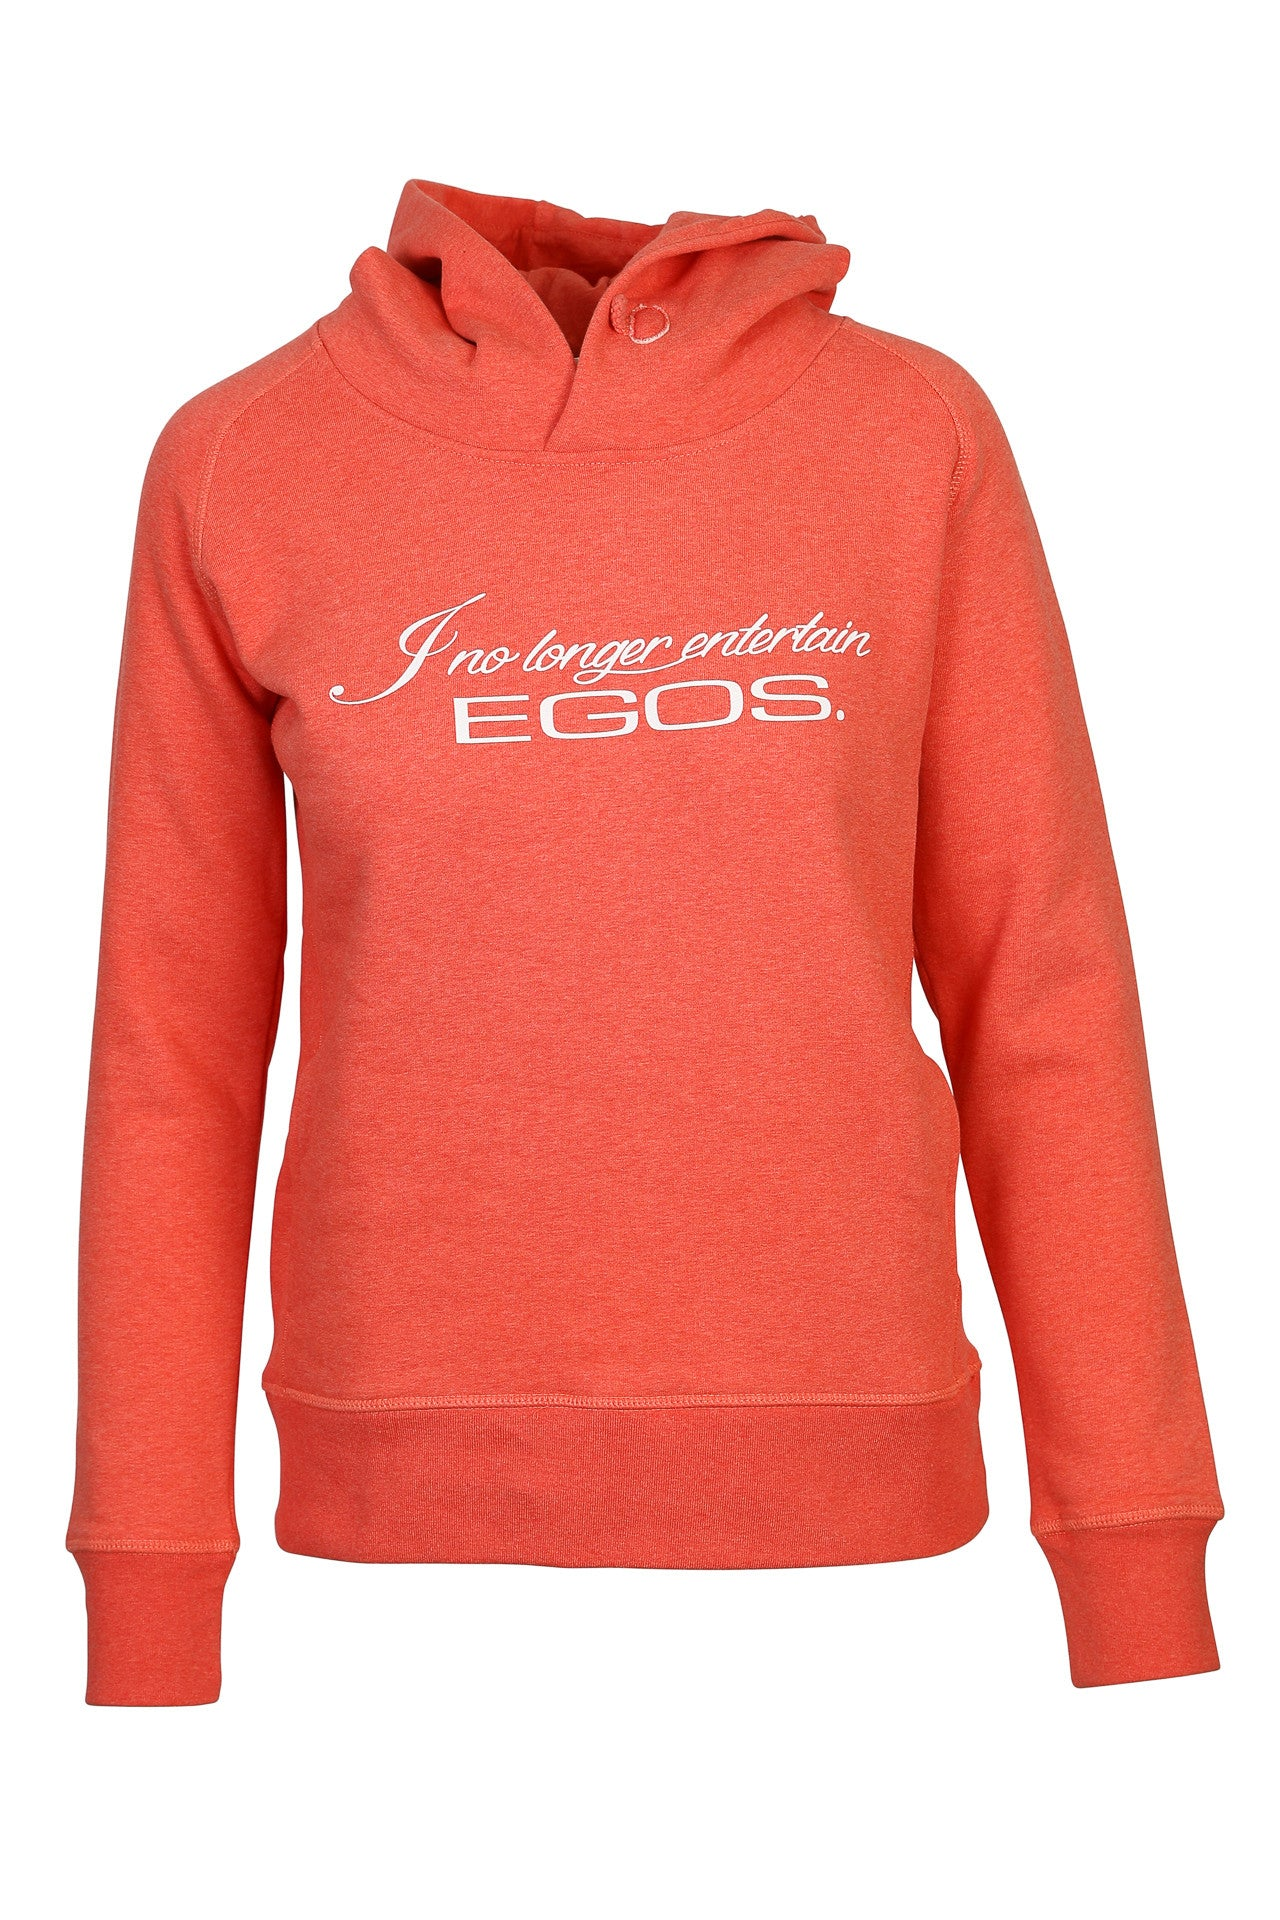 I no longer entertain egos - Hoodie